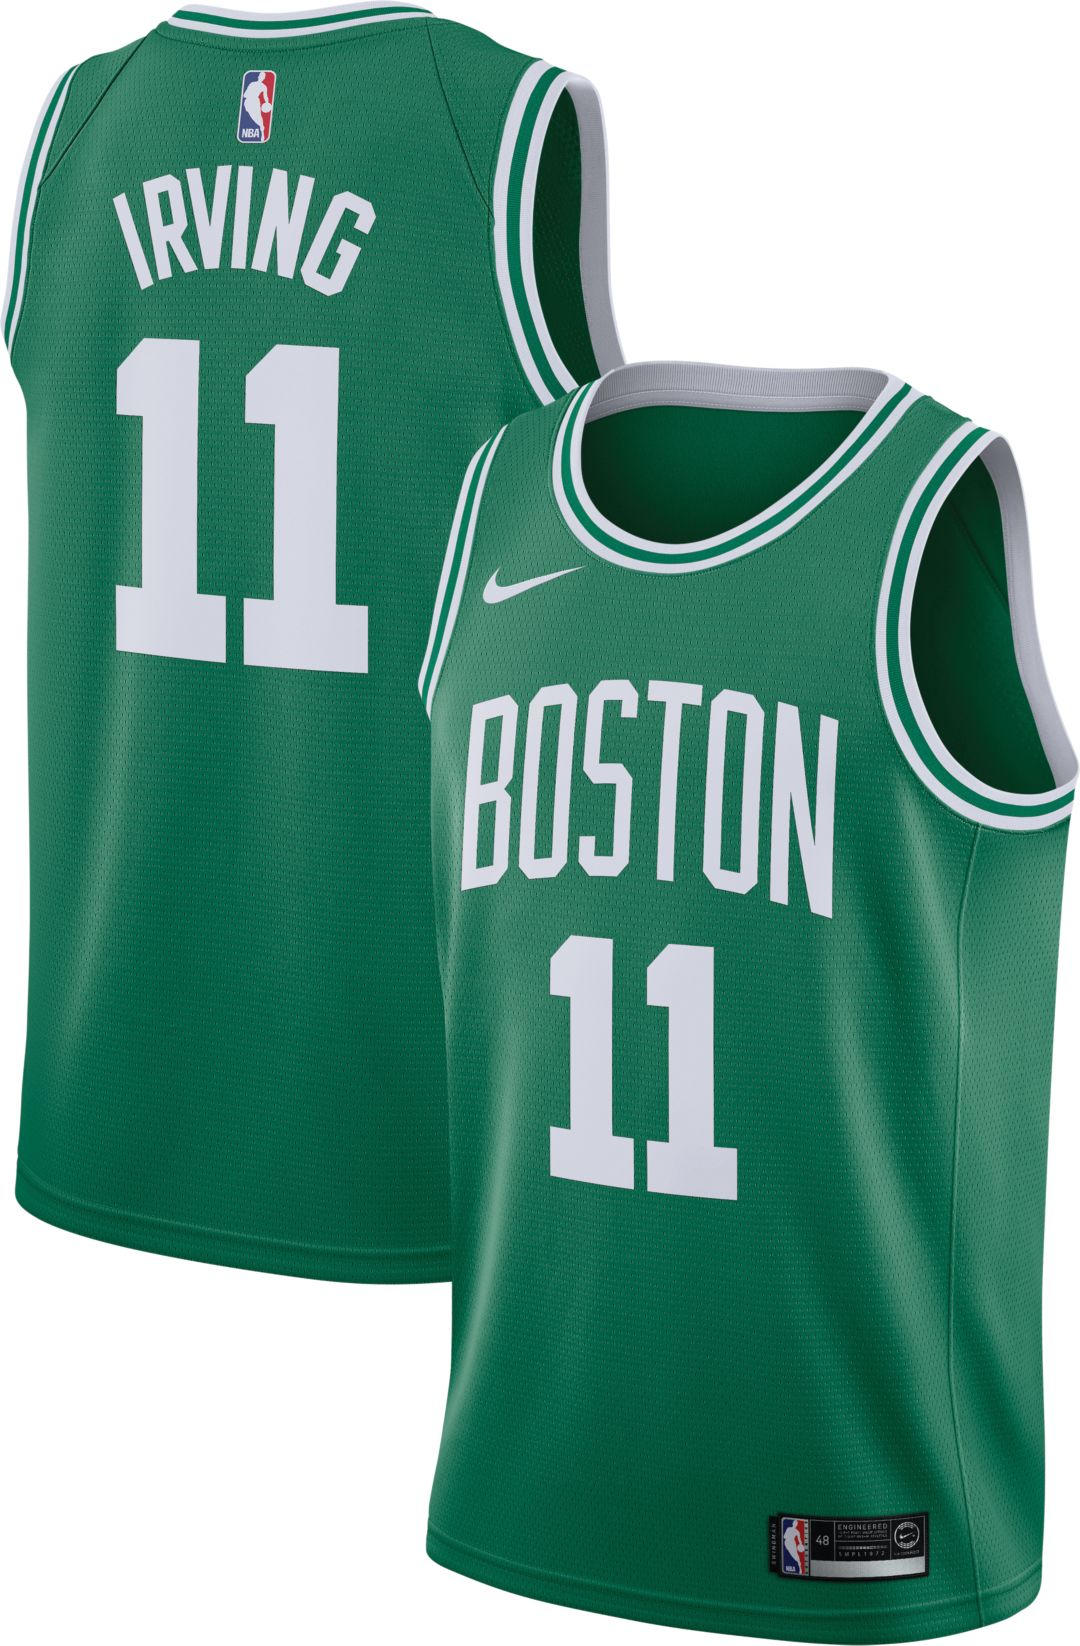 a0c18628780b Nike Men s Boston Celtics Kyrie Irving  11 Kelly Green Dri-FIT Swingman  Jersey 1